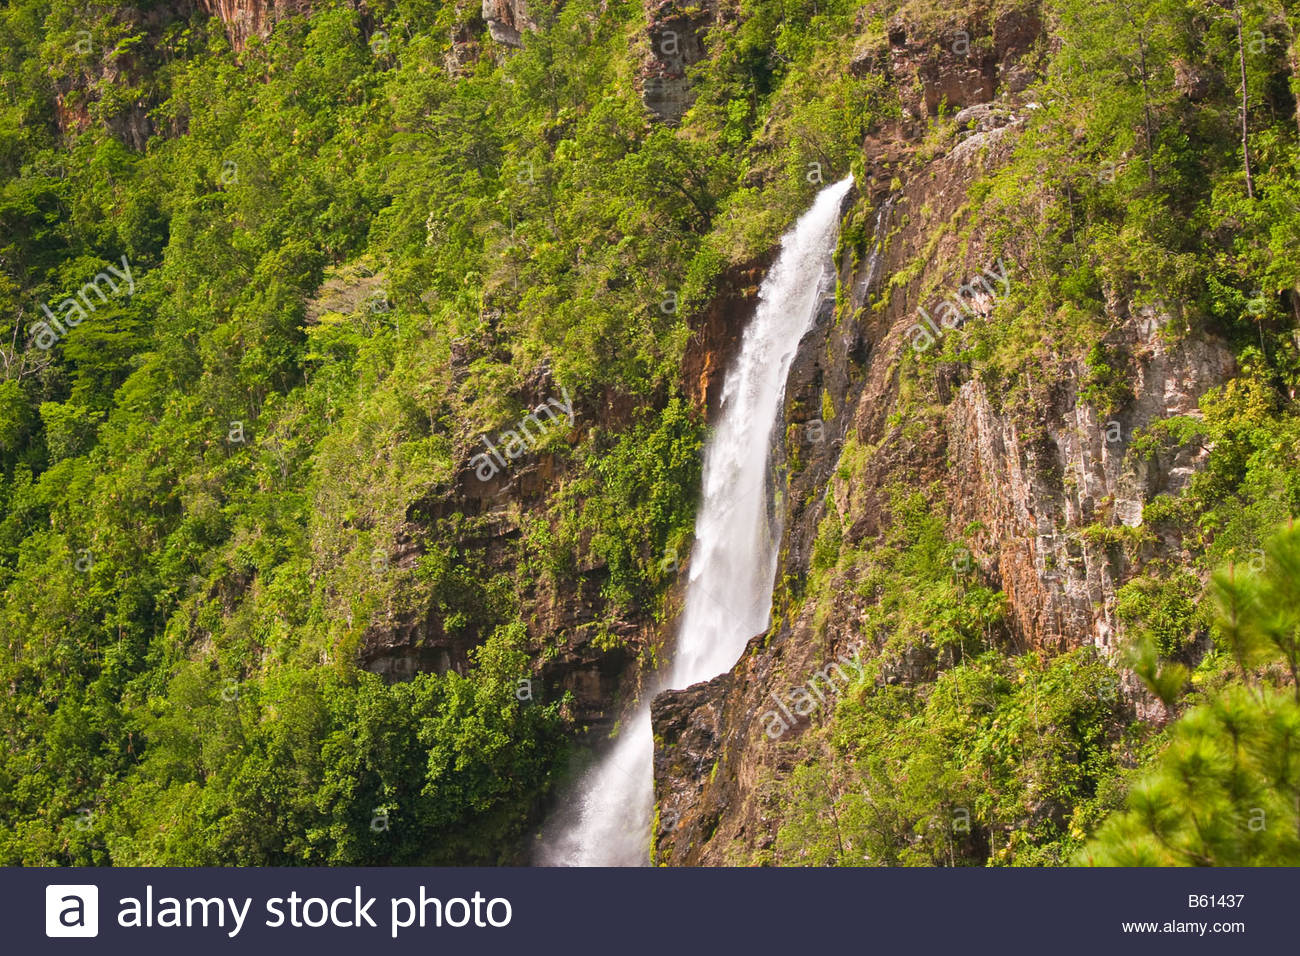 Thousand Foot Falls Mountain Pine Ridge Area, CAYO DISTRICT BELIZE Thousand Foot Falls in the lush Mountain Pine ...